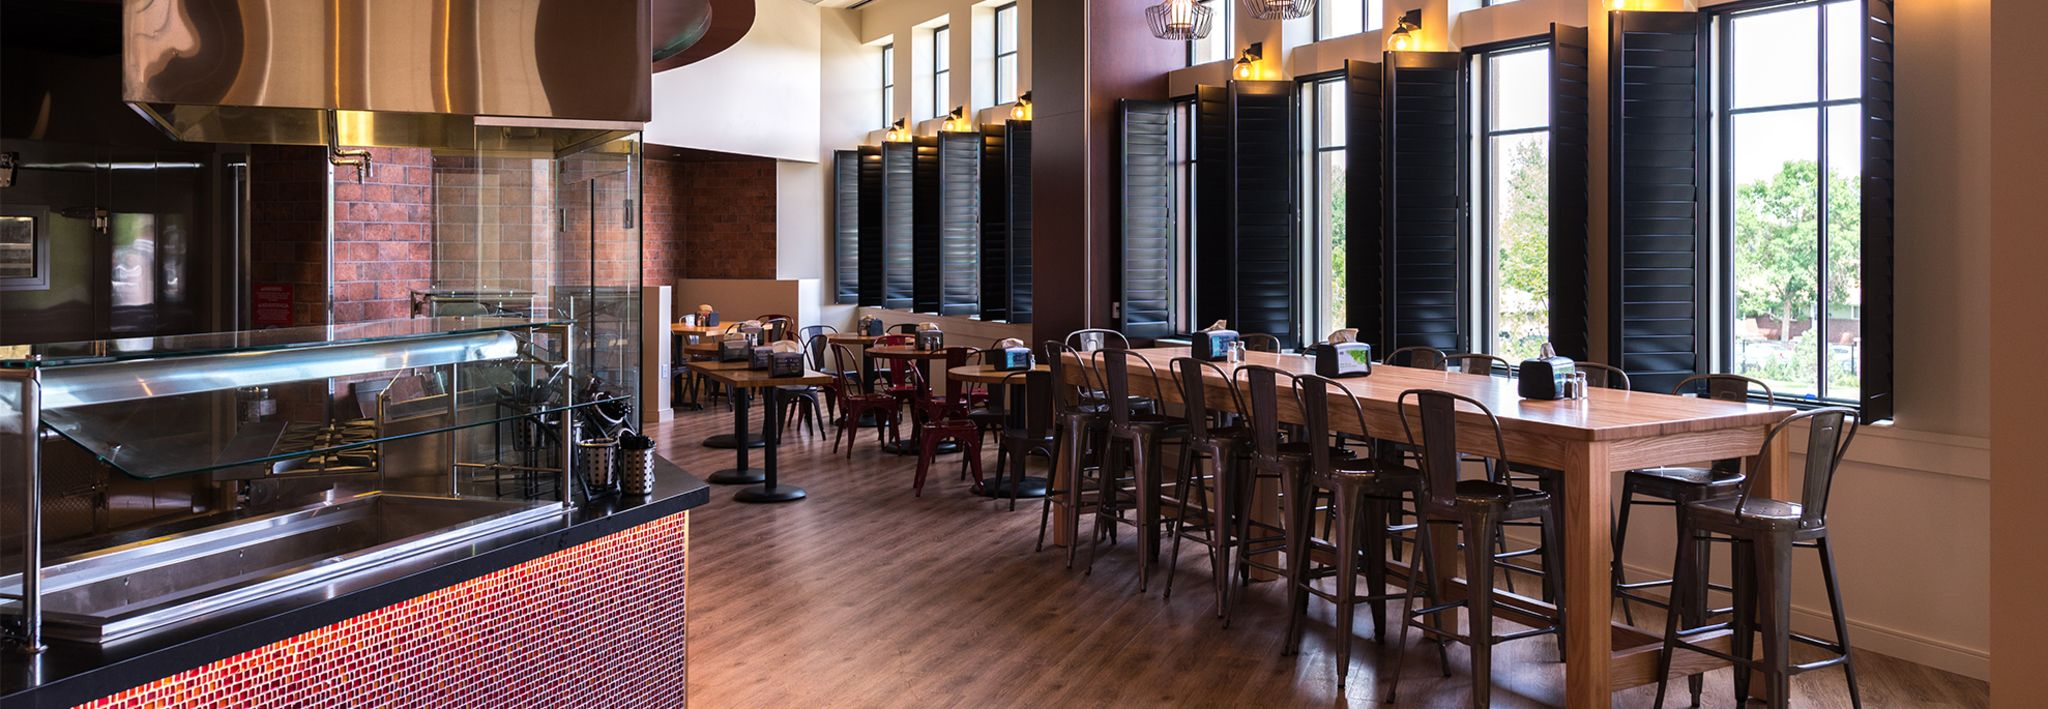 The Dining Commons is located on the Colorado Christian University campus.